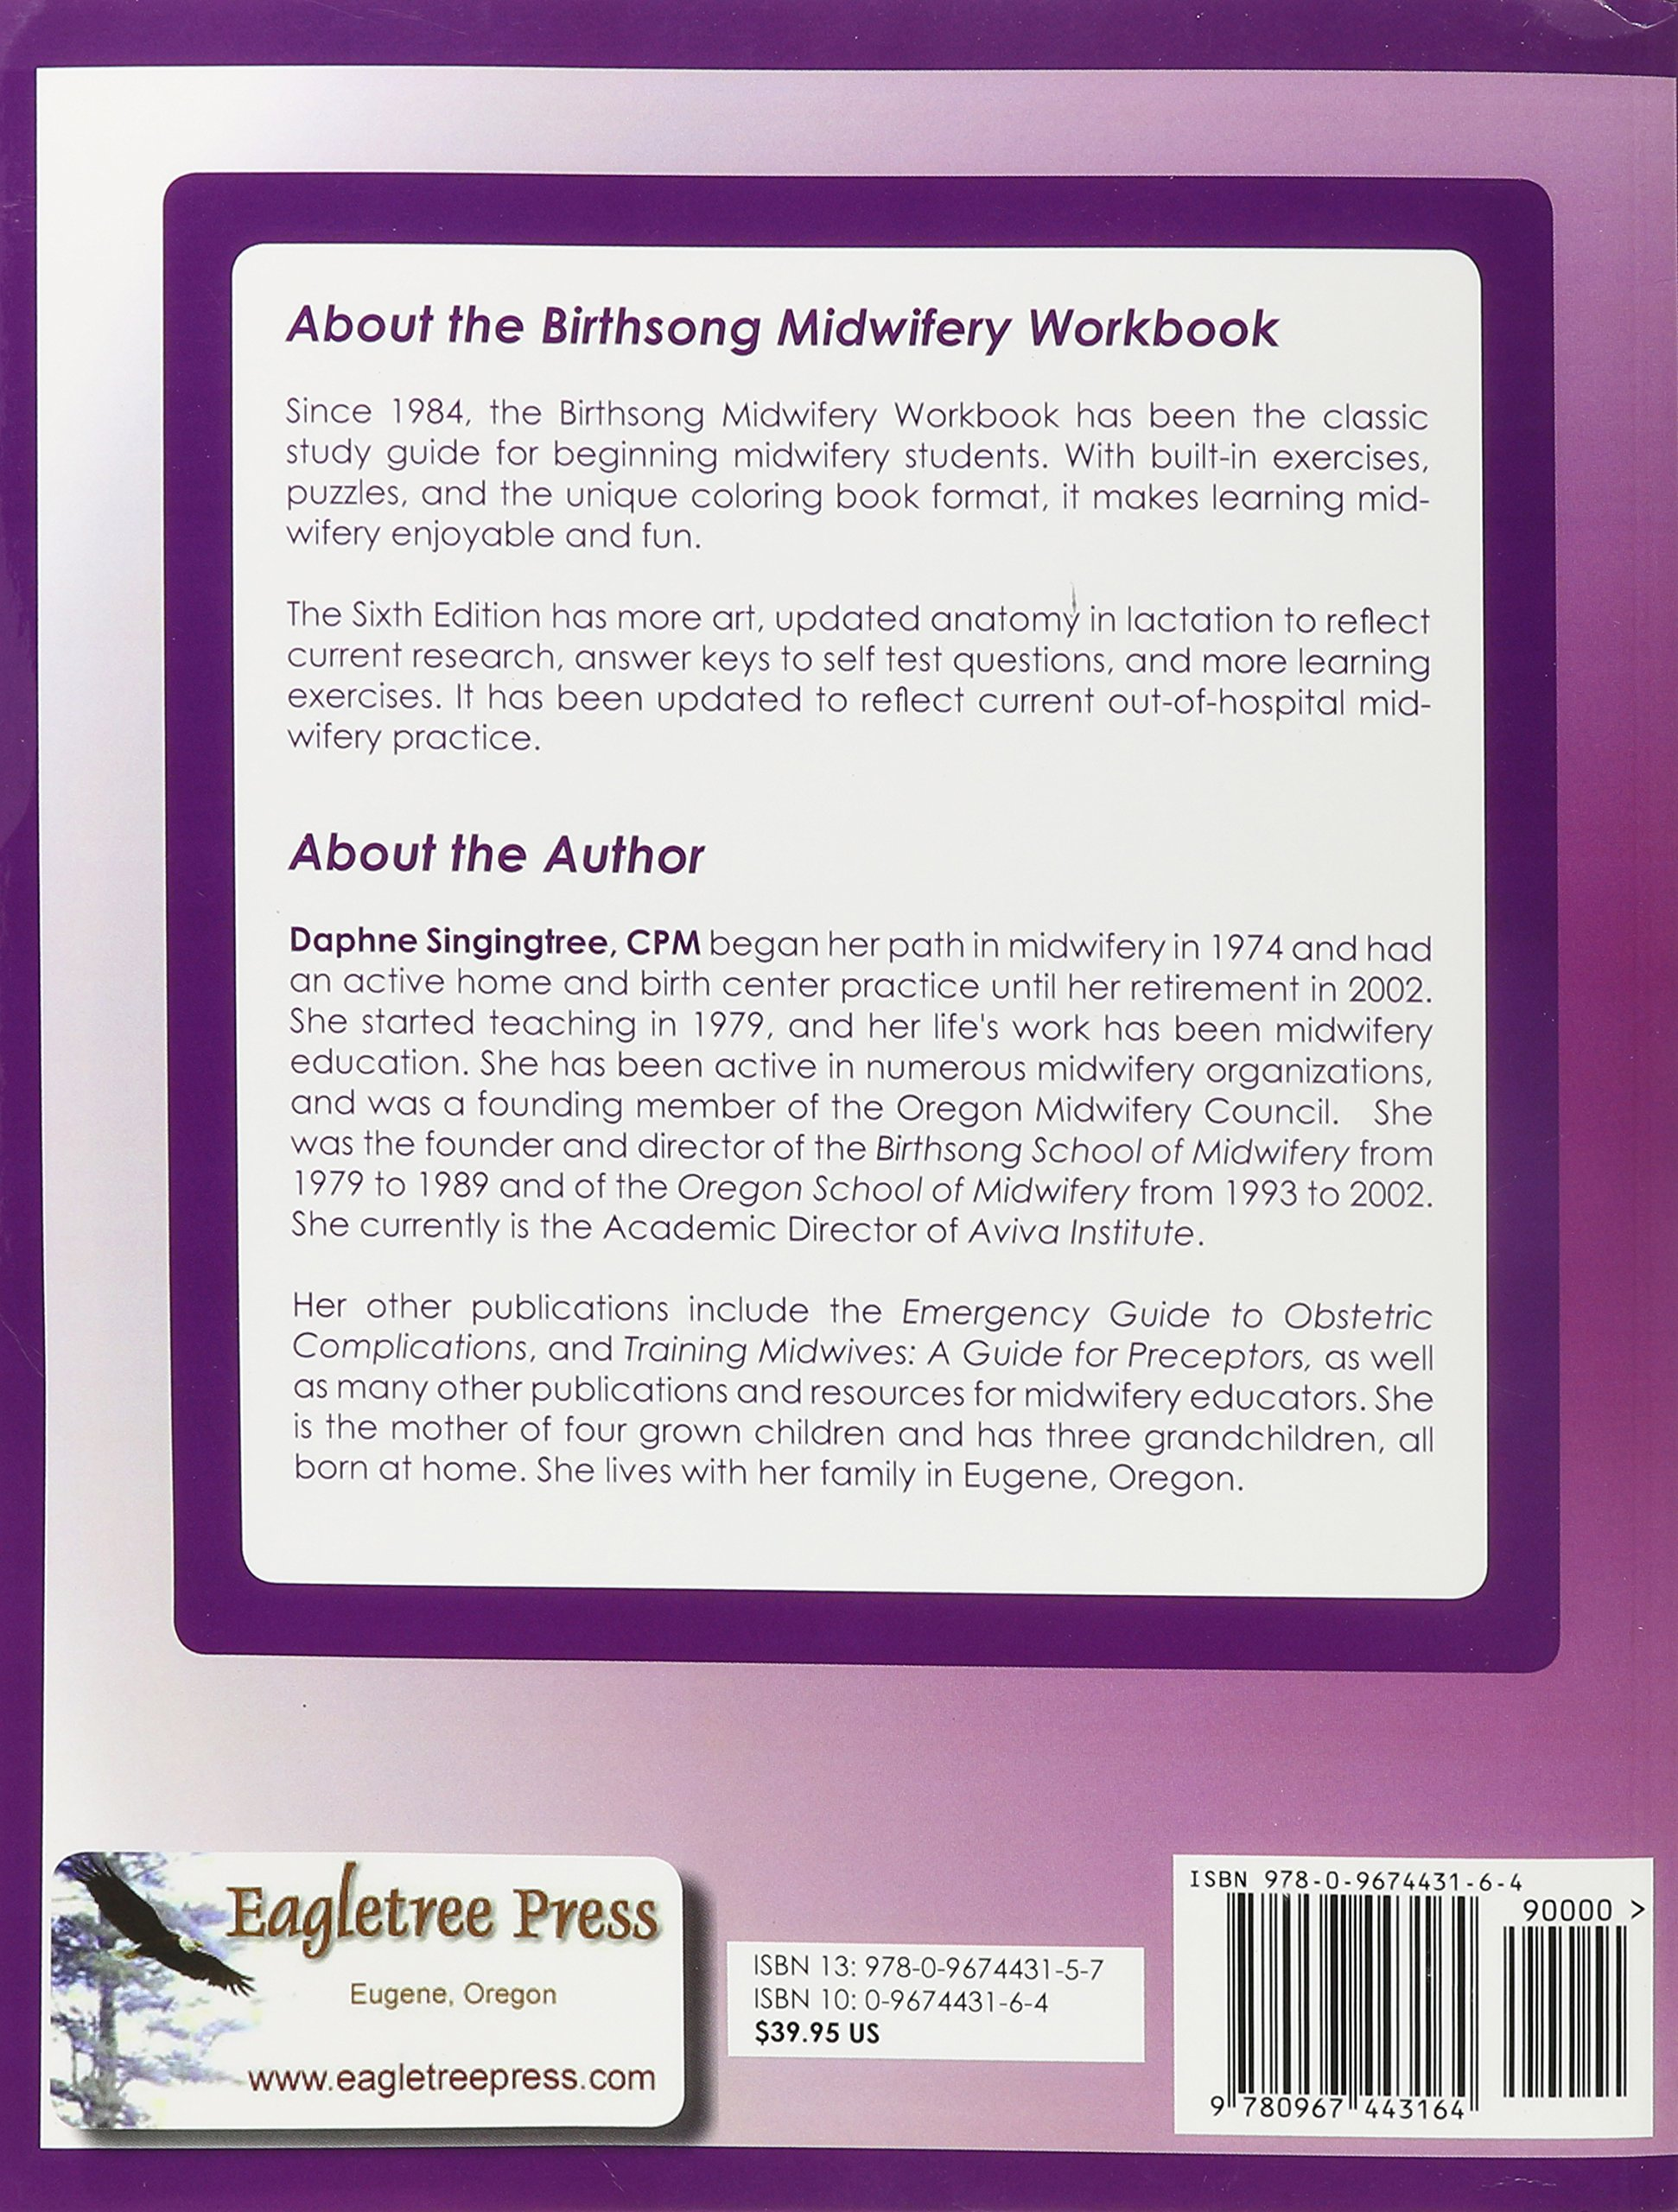 Birthsong midwifery workbook 6th edition daphne singingtree ellen birthsong midwifery workbook 6th edition daphne singingtree ellen klowden patricia edmonds bonnie gruenburg ruth simer jennifer buccilli fandeluxe Images